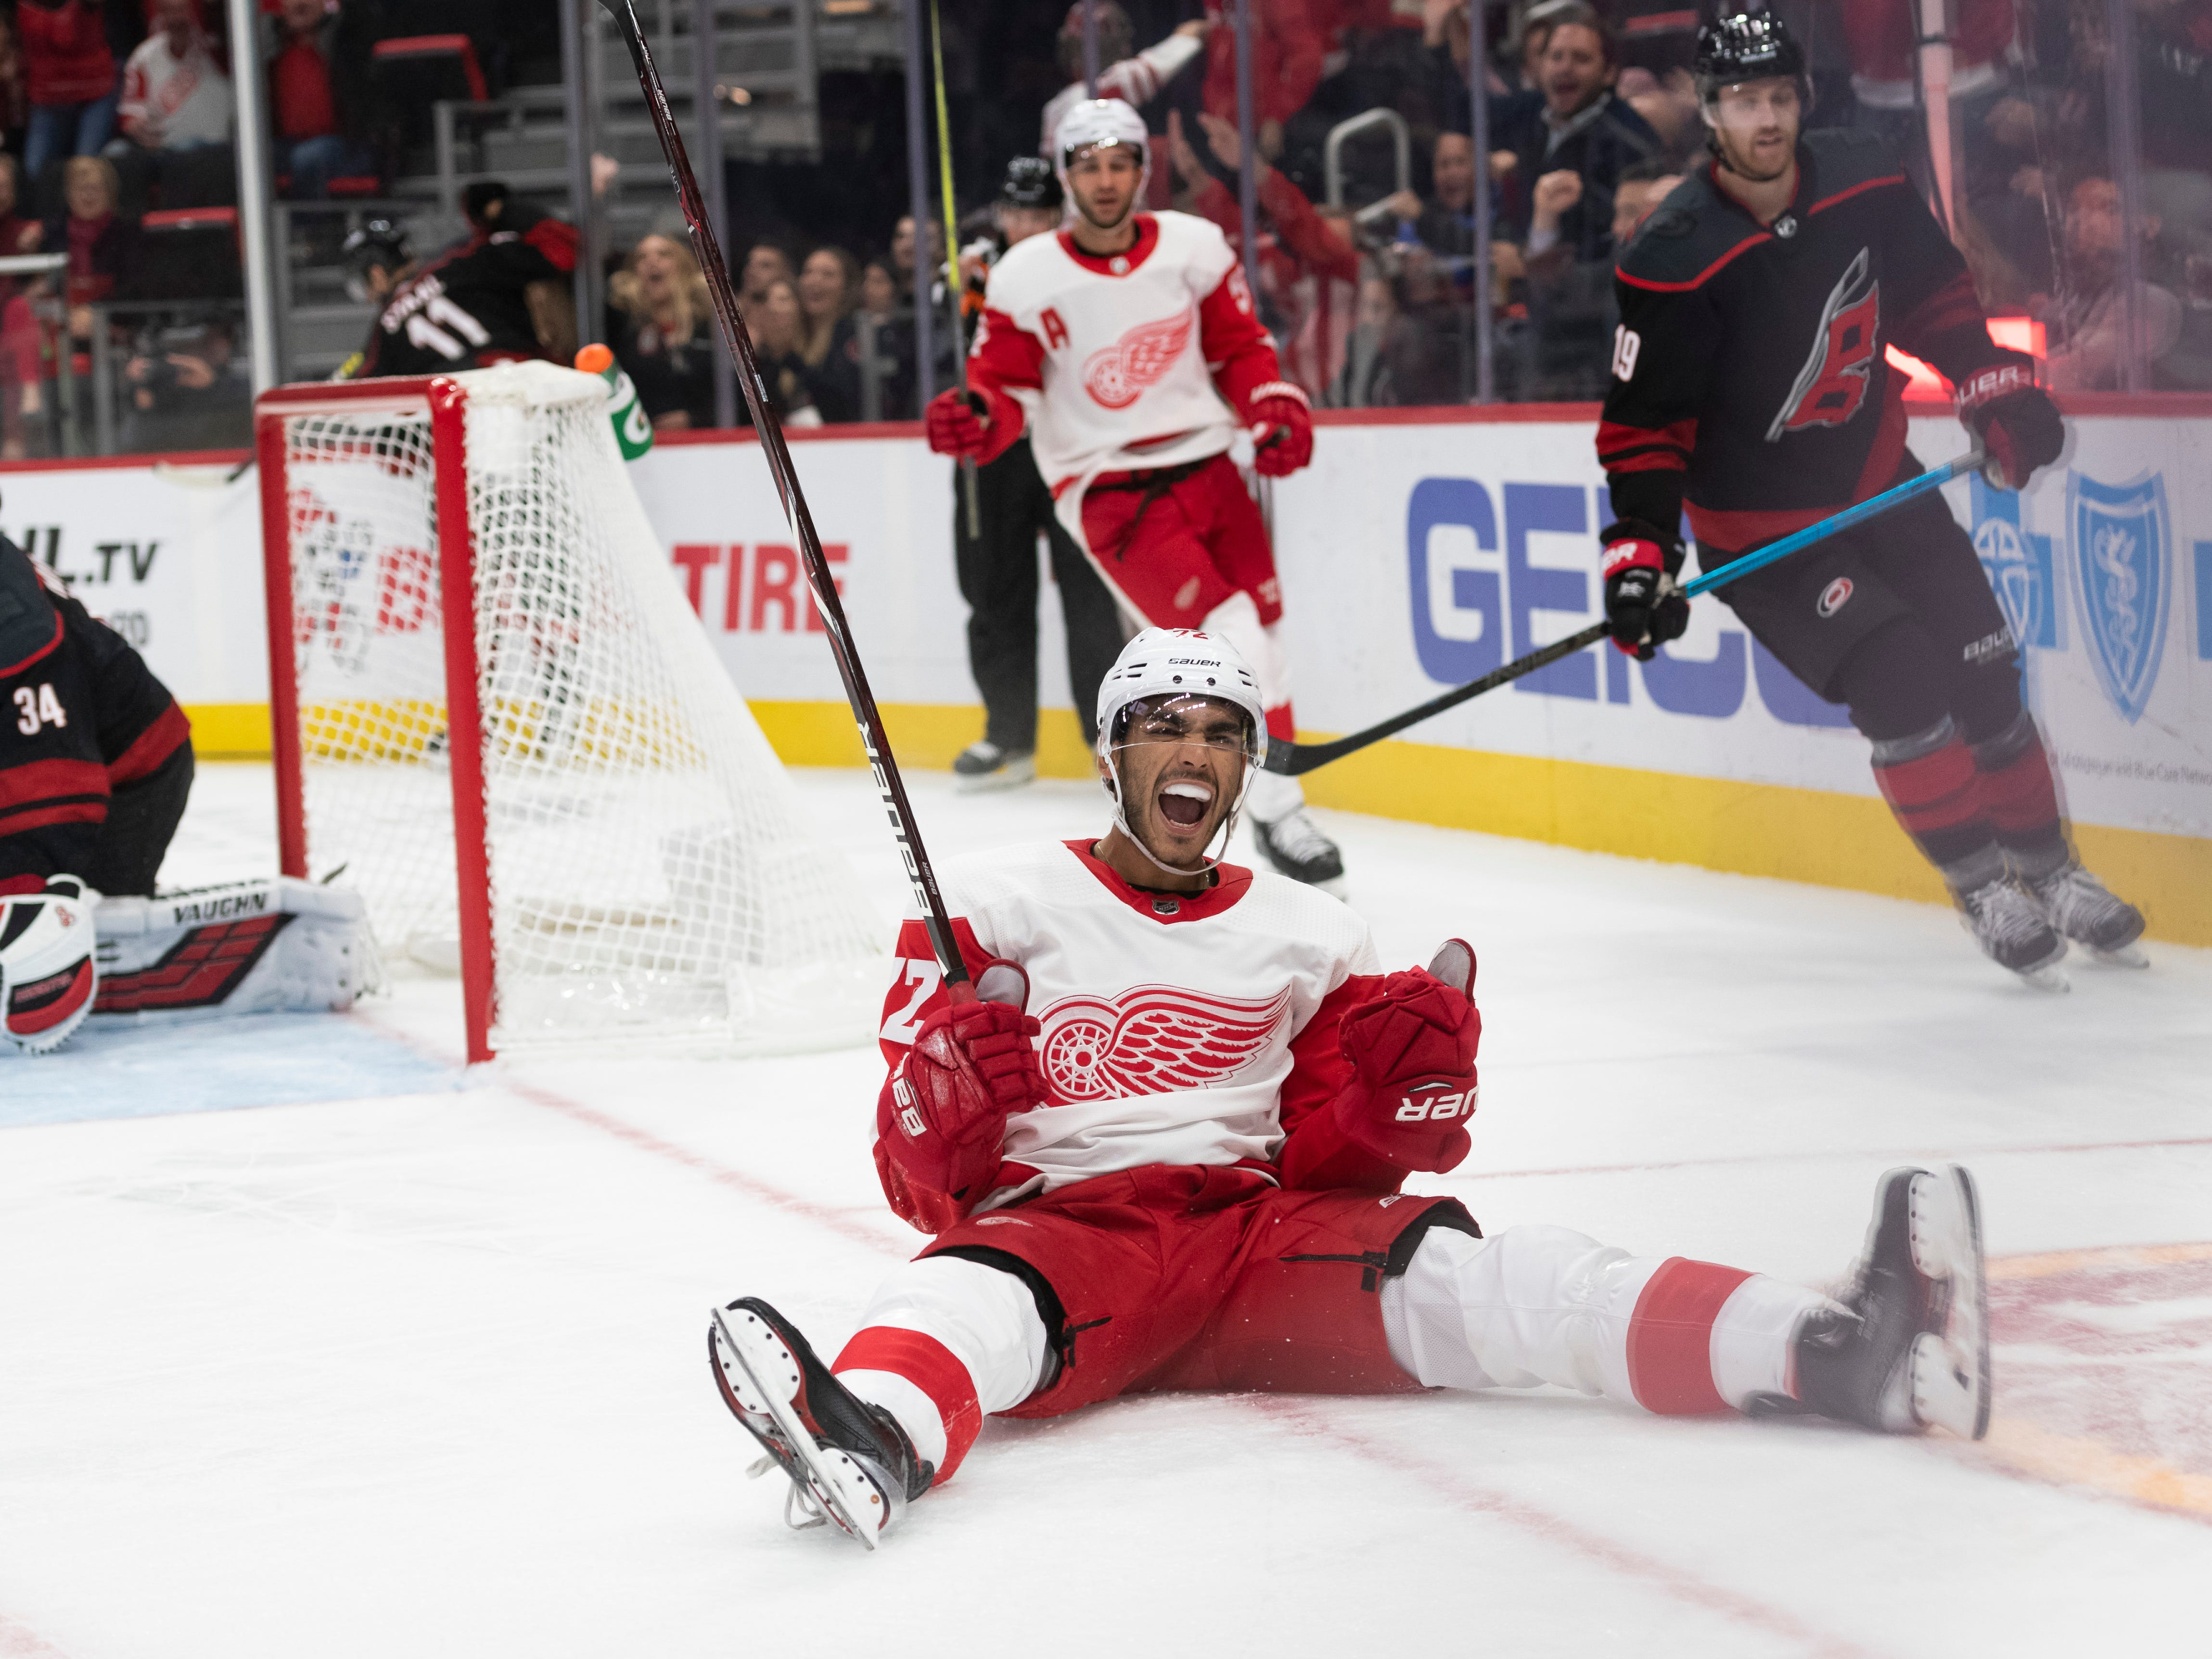 Detroit center Andreas Athanasiou celebrates after scoring on Carolina goaltender Petr Mrazek in the third period of a 3-1 loss at Little Caesars Arena, in Detroit, October 22, 2018.